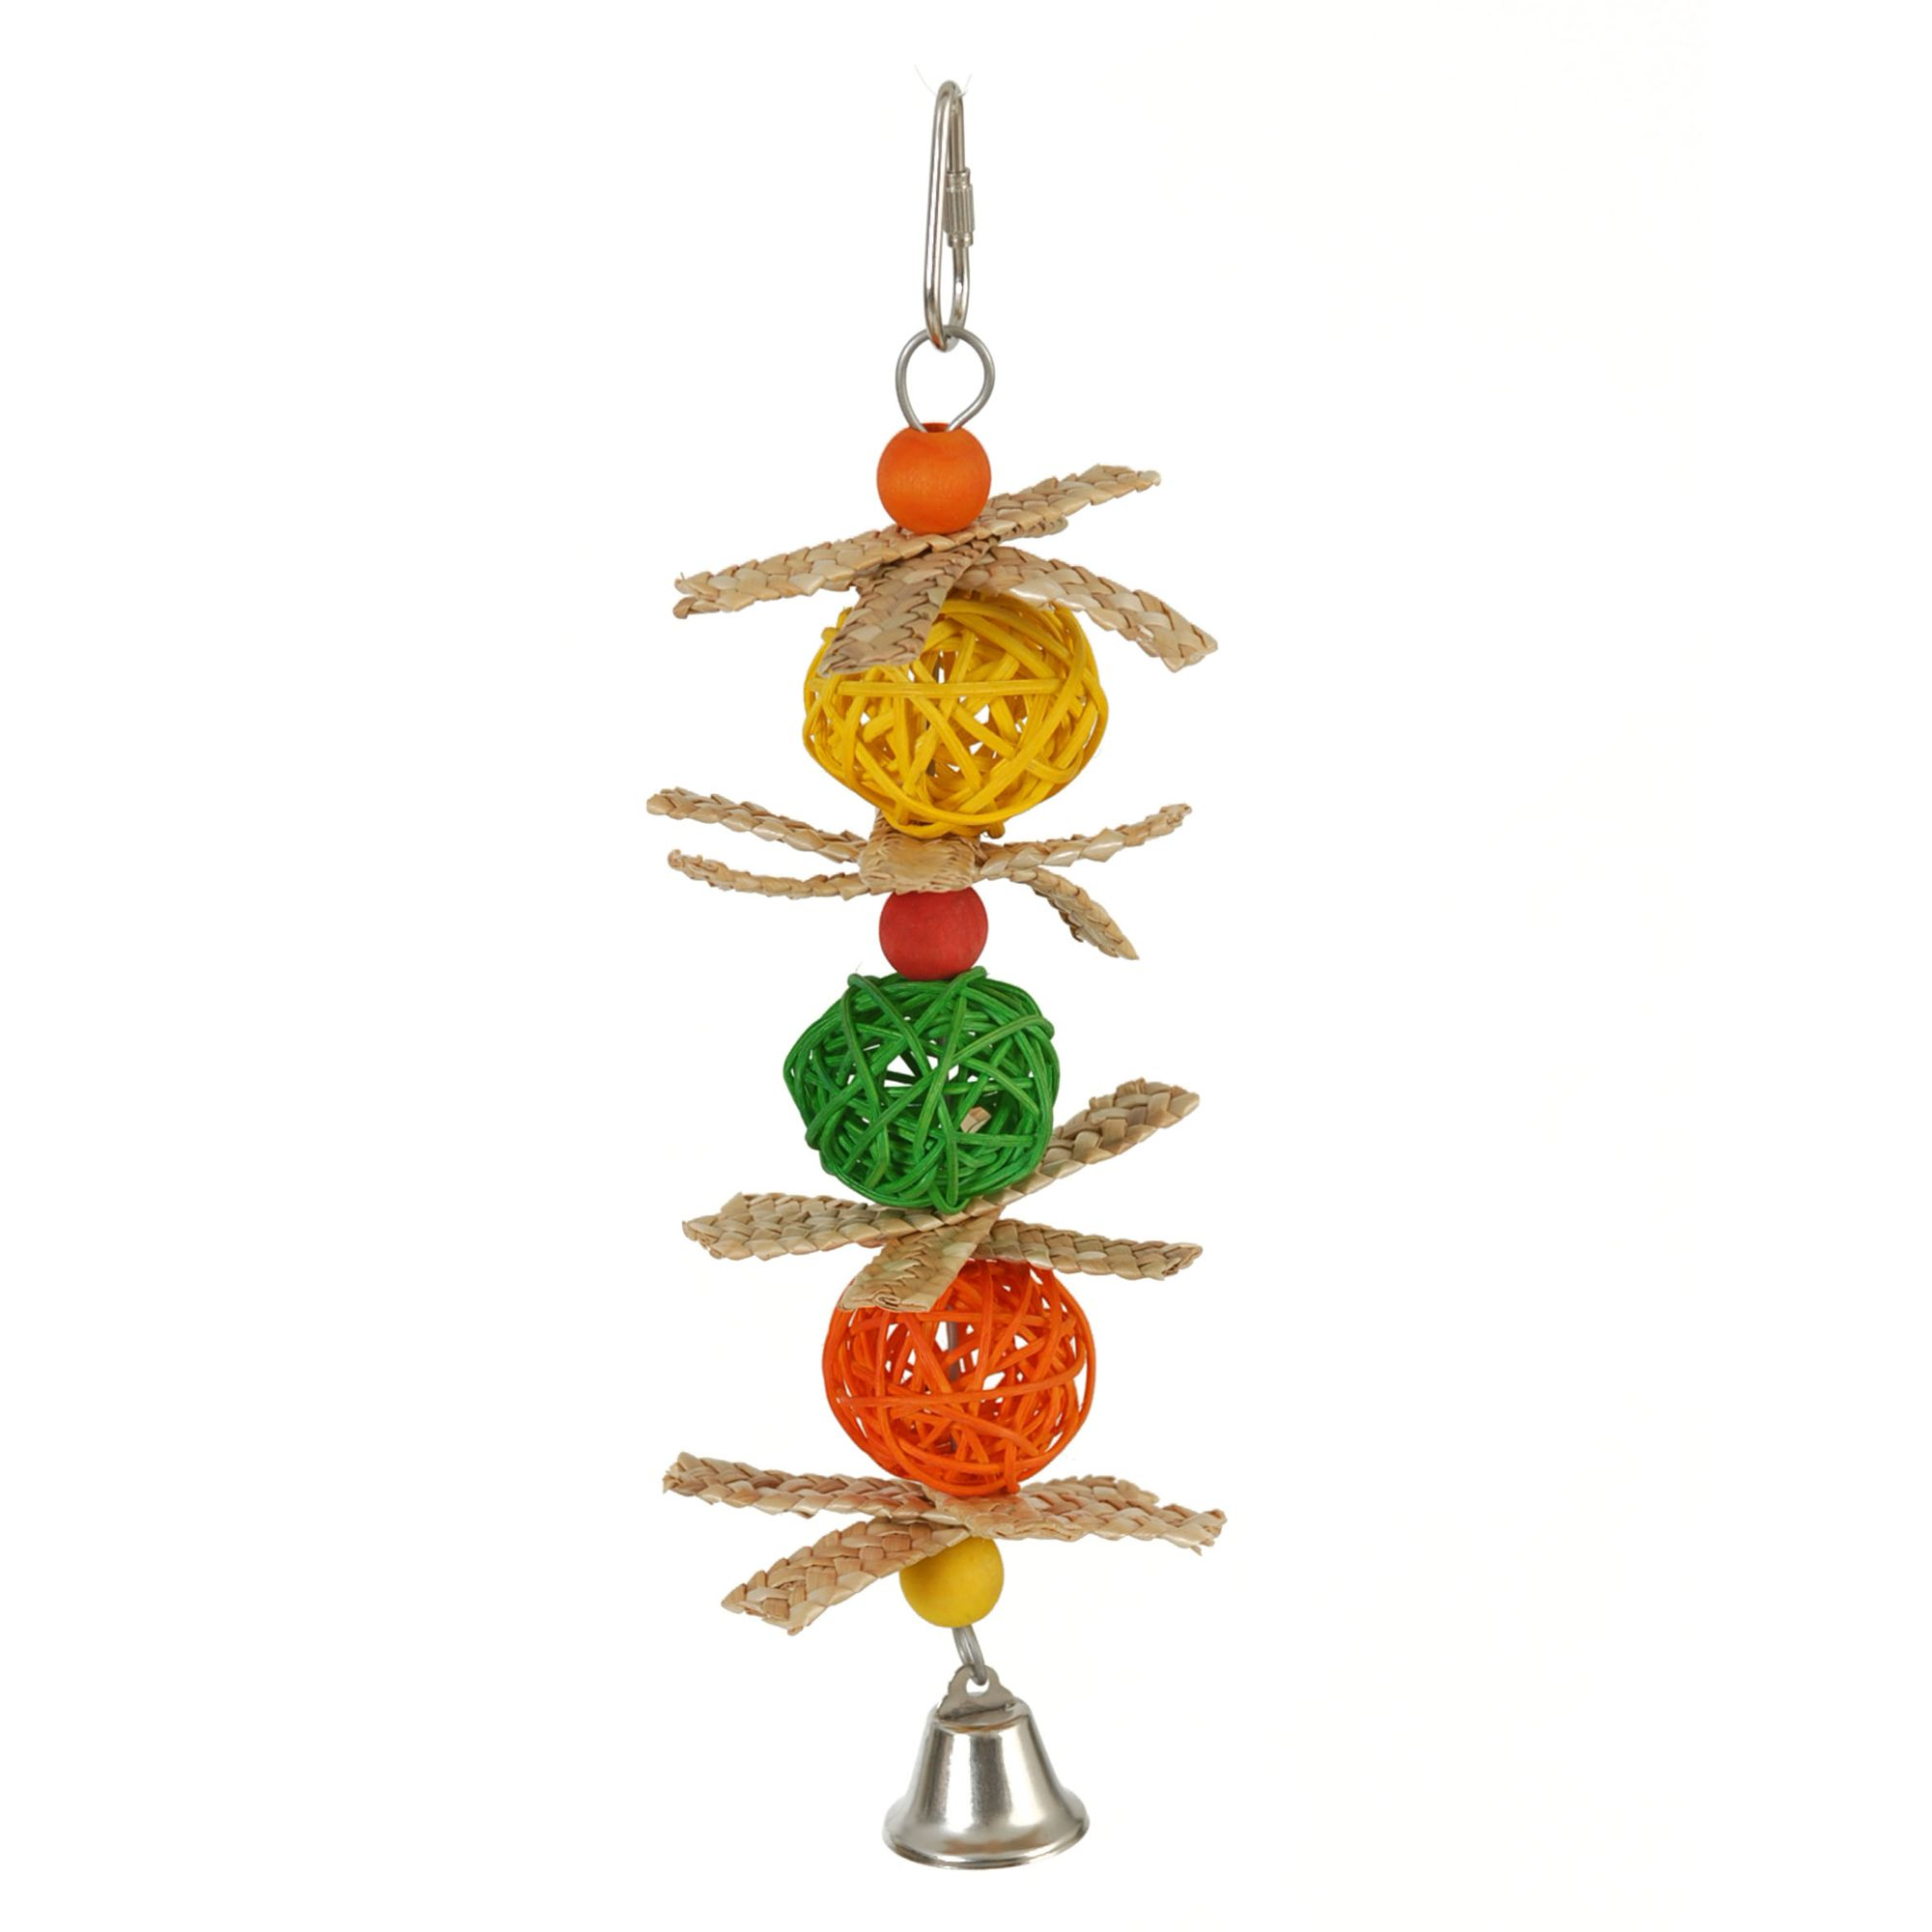 All Living Things Woven Vine Balls Bird Toy 5247964